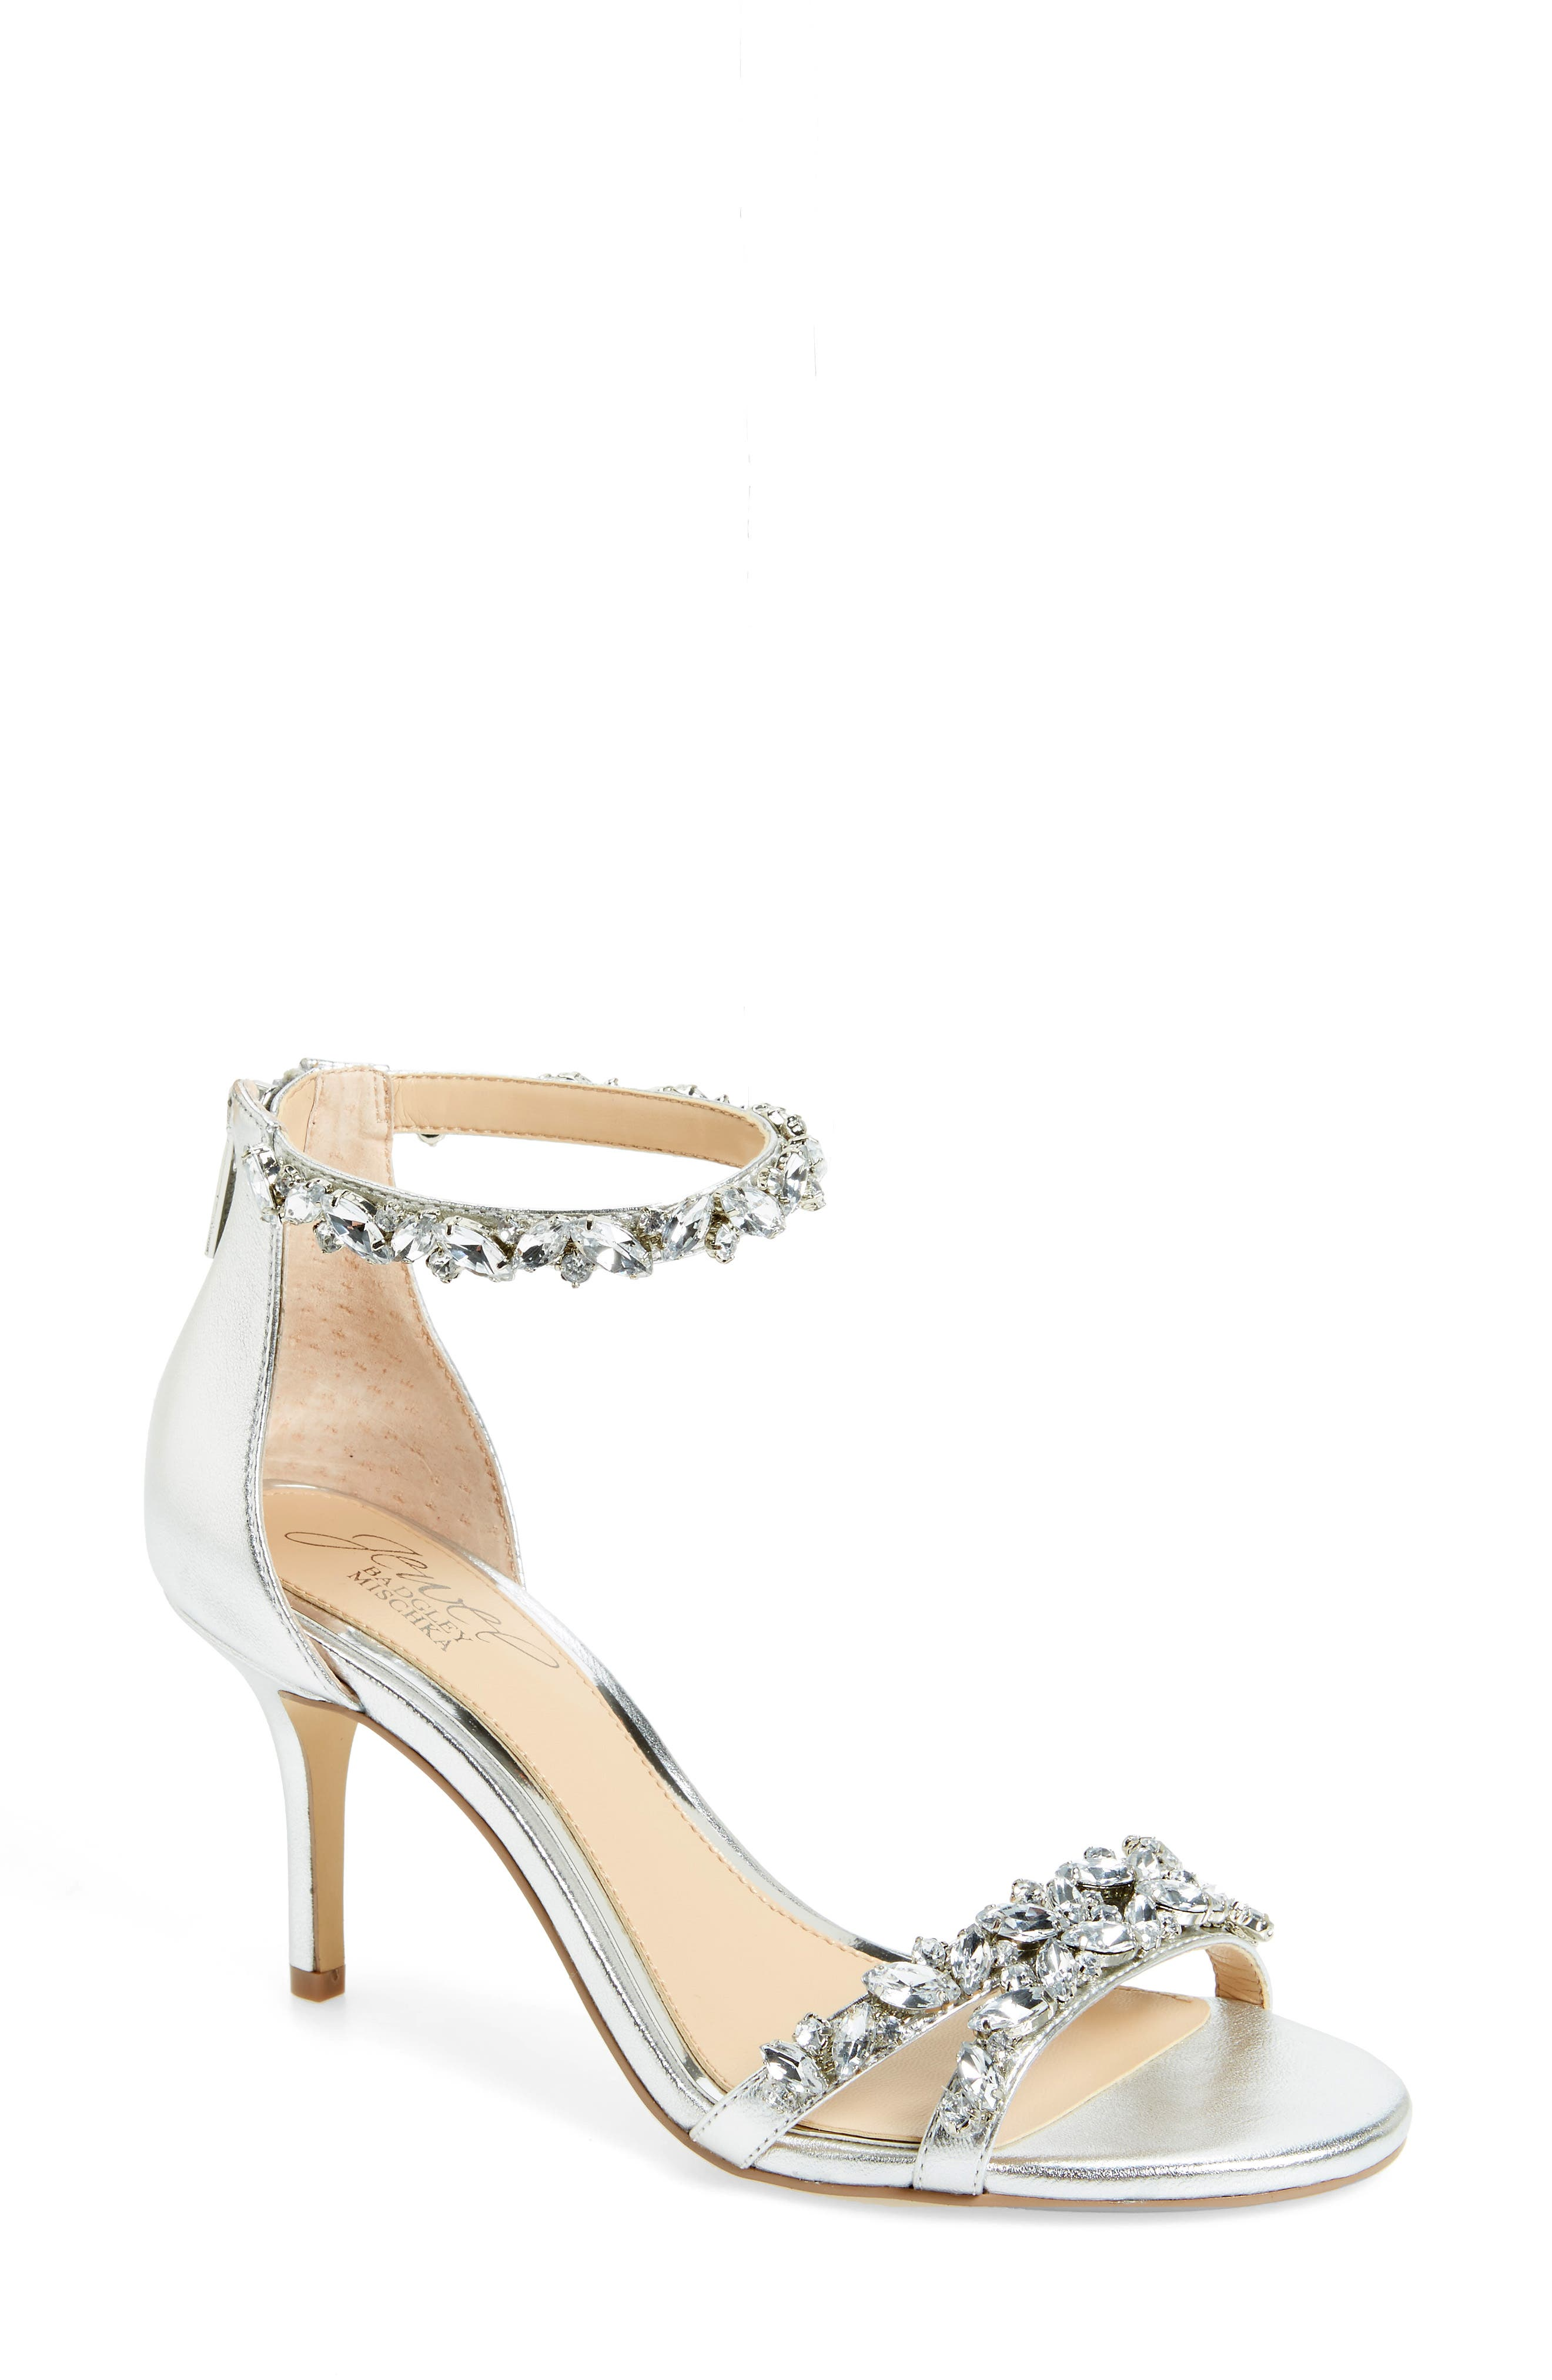 Alternate Image 1 Selected - Jewel Badgley Mischka Caroline Embellished Sandal (Women)